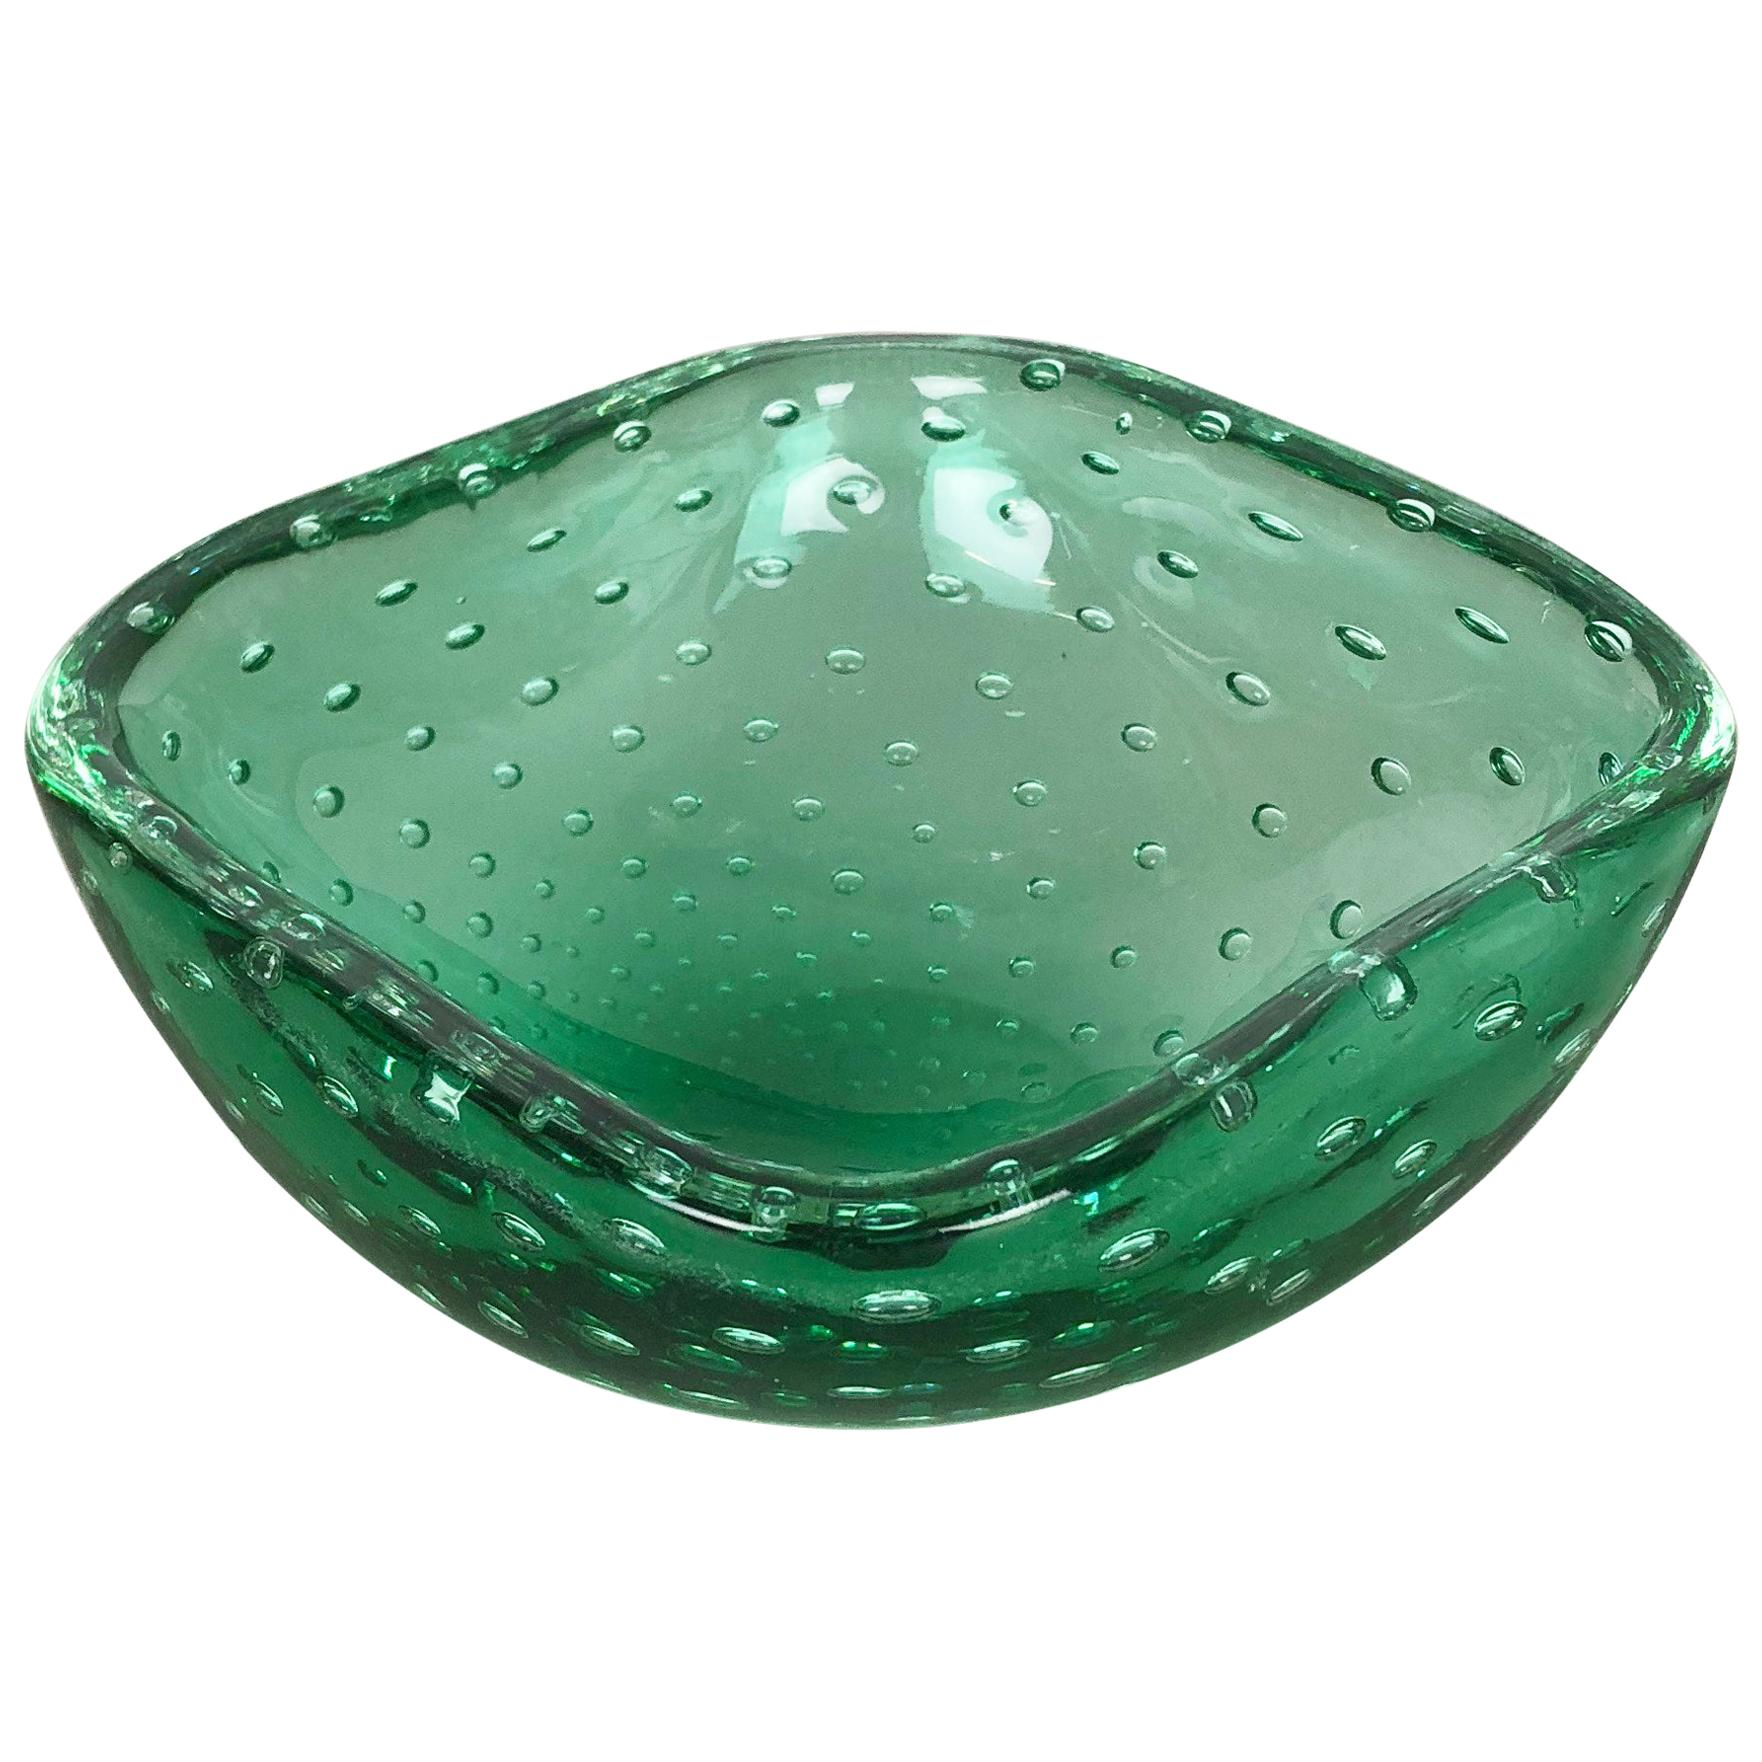 "Murano Glass Bullicante ""Green"" Bowl Element Shell Ashtray Murano, Italy, 1970s"